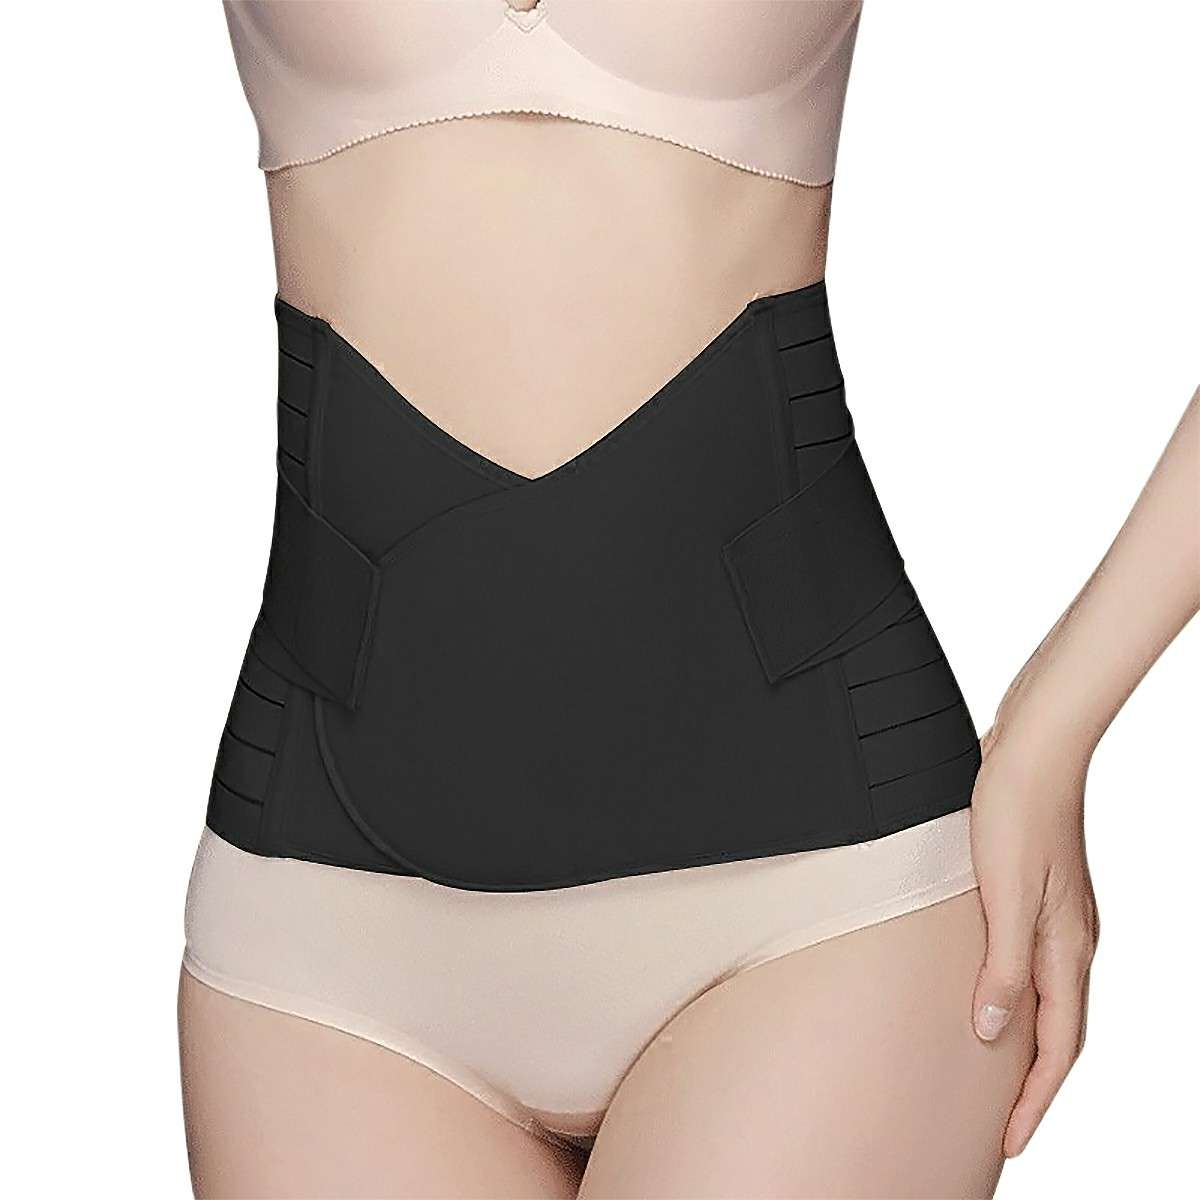 Postpartum Corset Recovery Tummy Belly Waist Support Belt | APP-28595